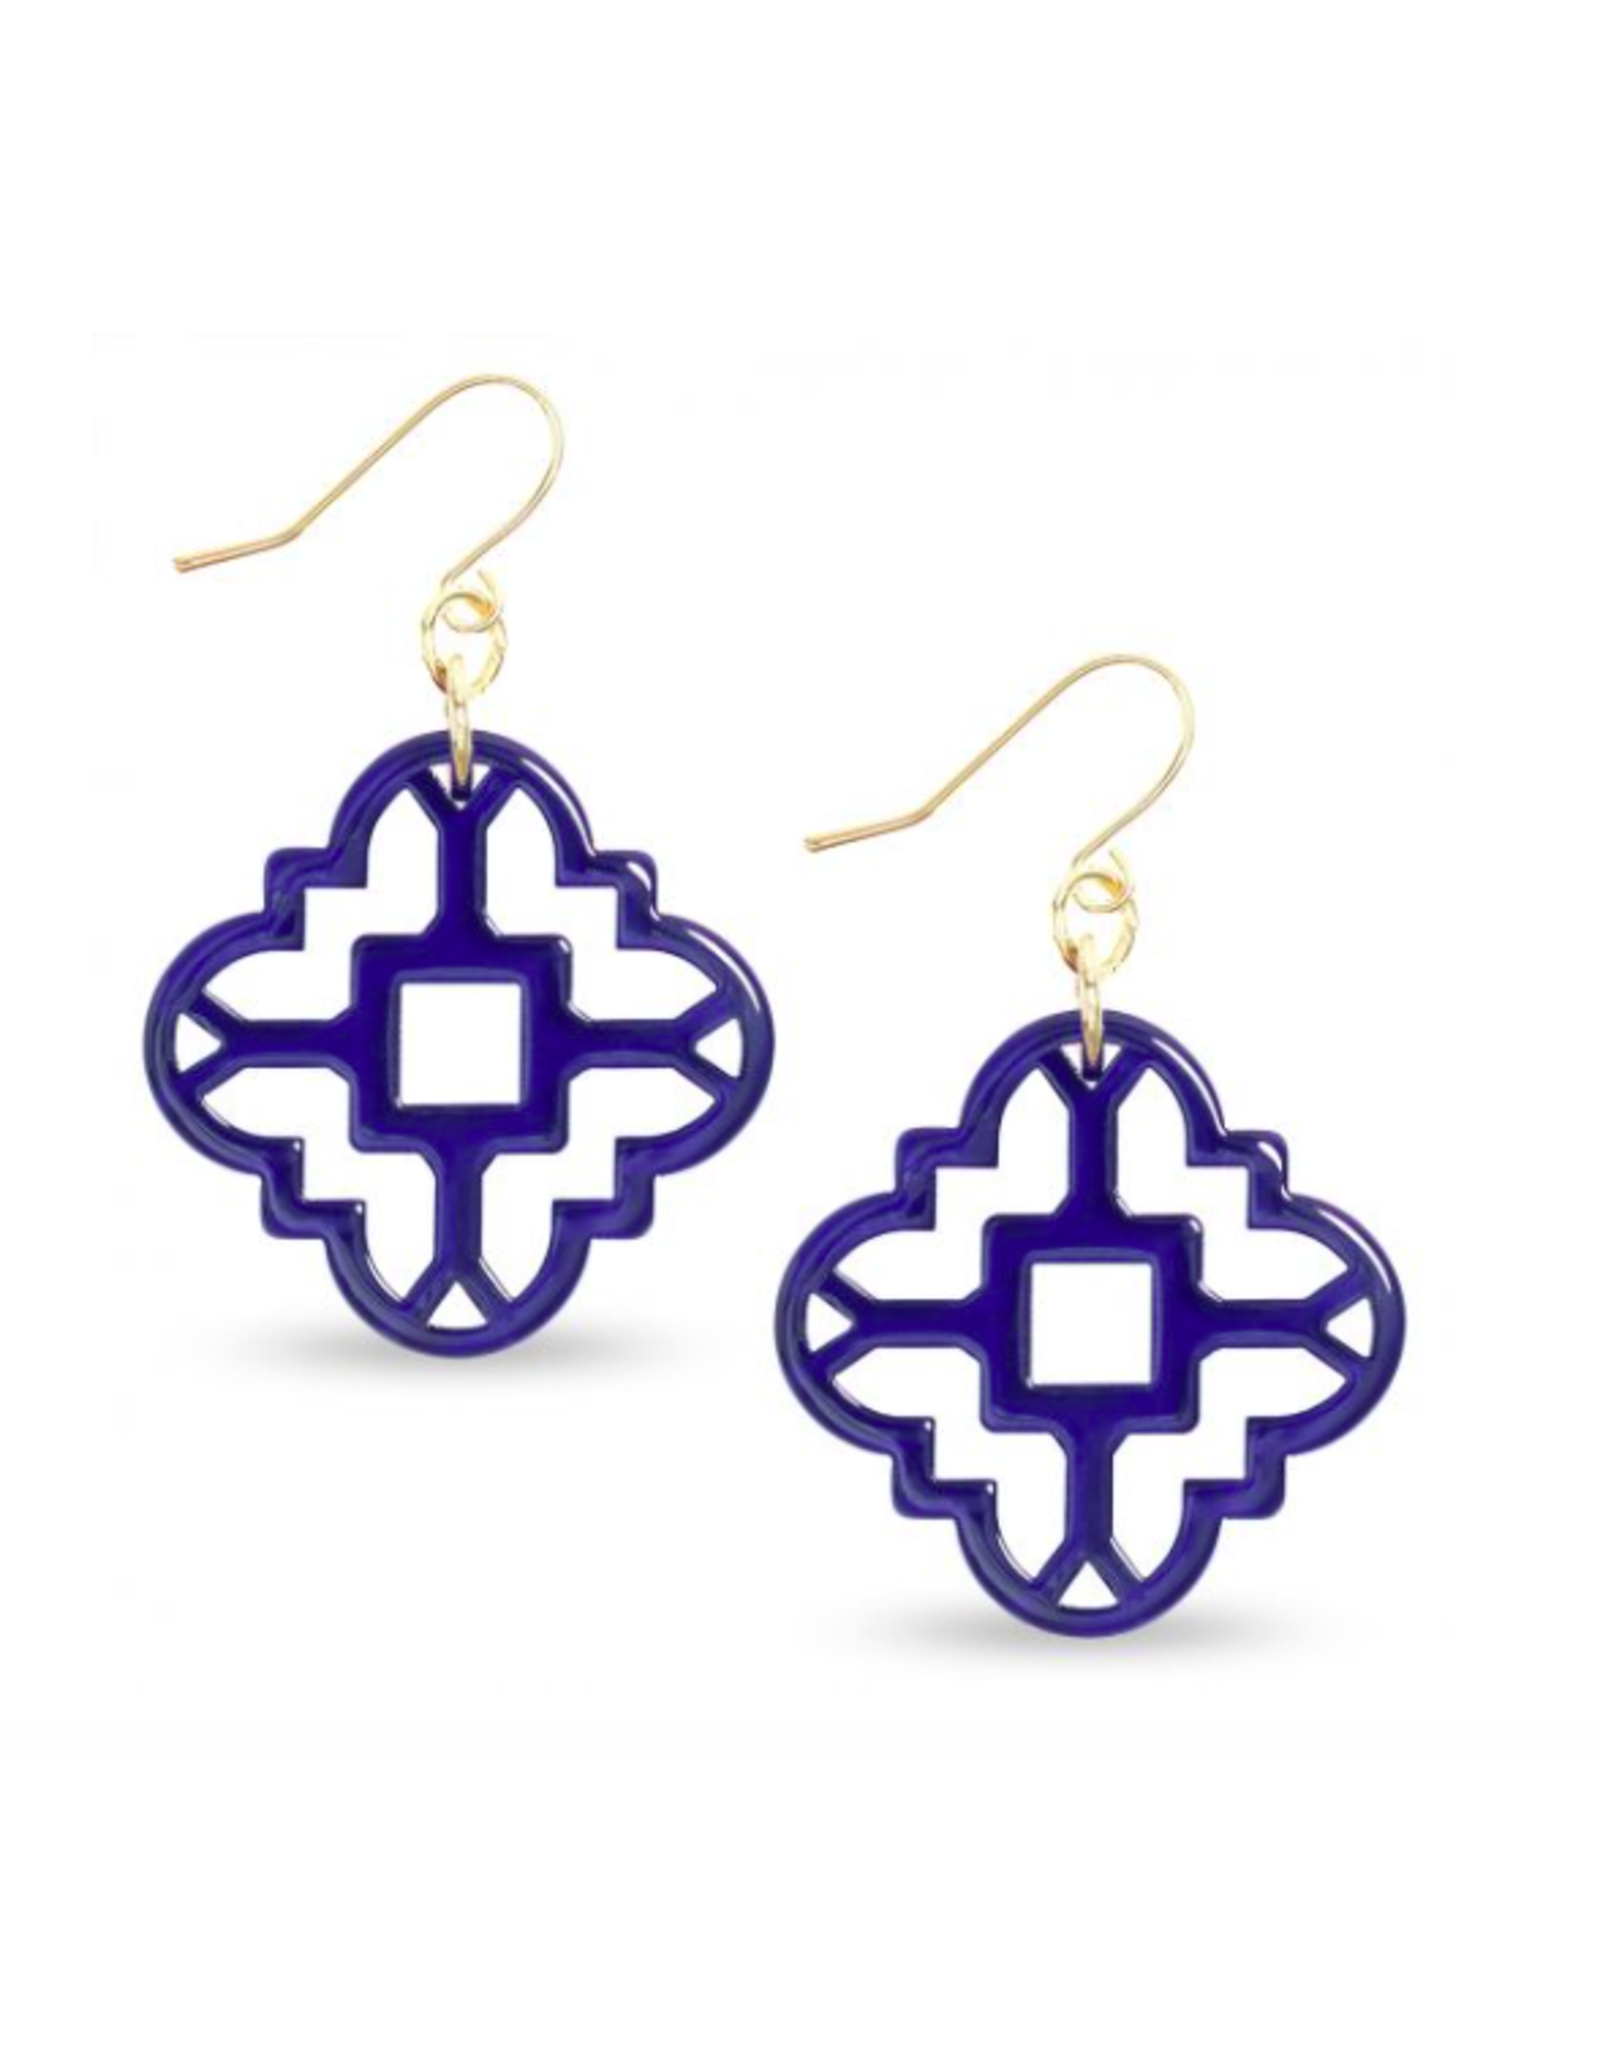 Zenzii Modern Mosaic Earrings in Navy